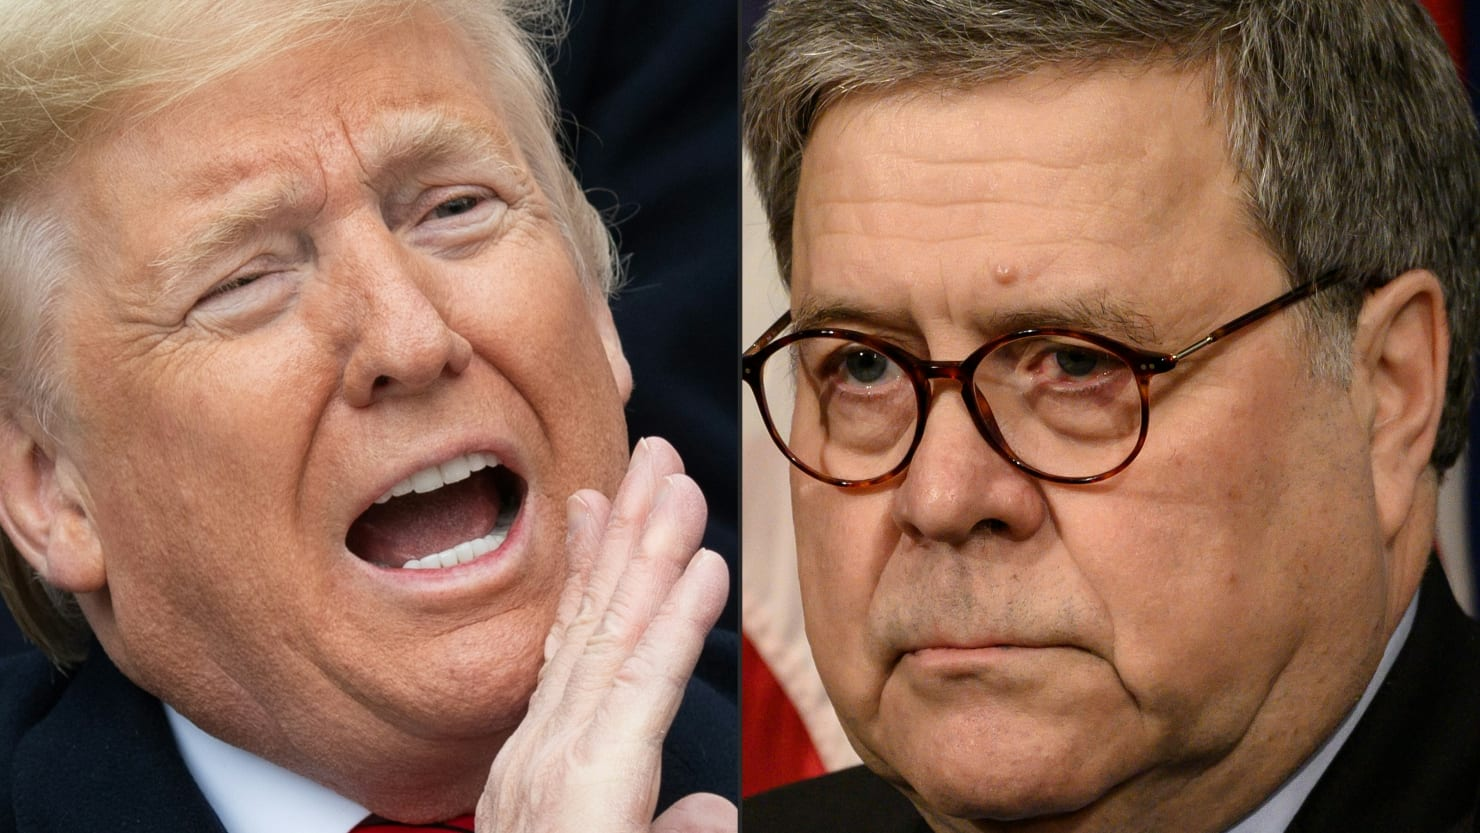 More Than 1,100 Former Department of Justice Employees Have Signed a Letter Demanding Bill Barr's Resignation